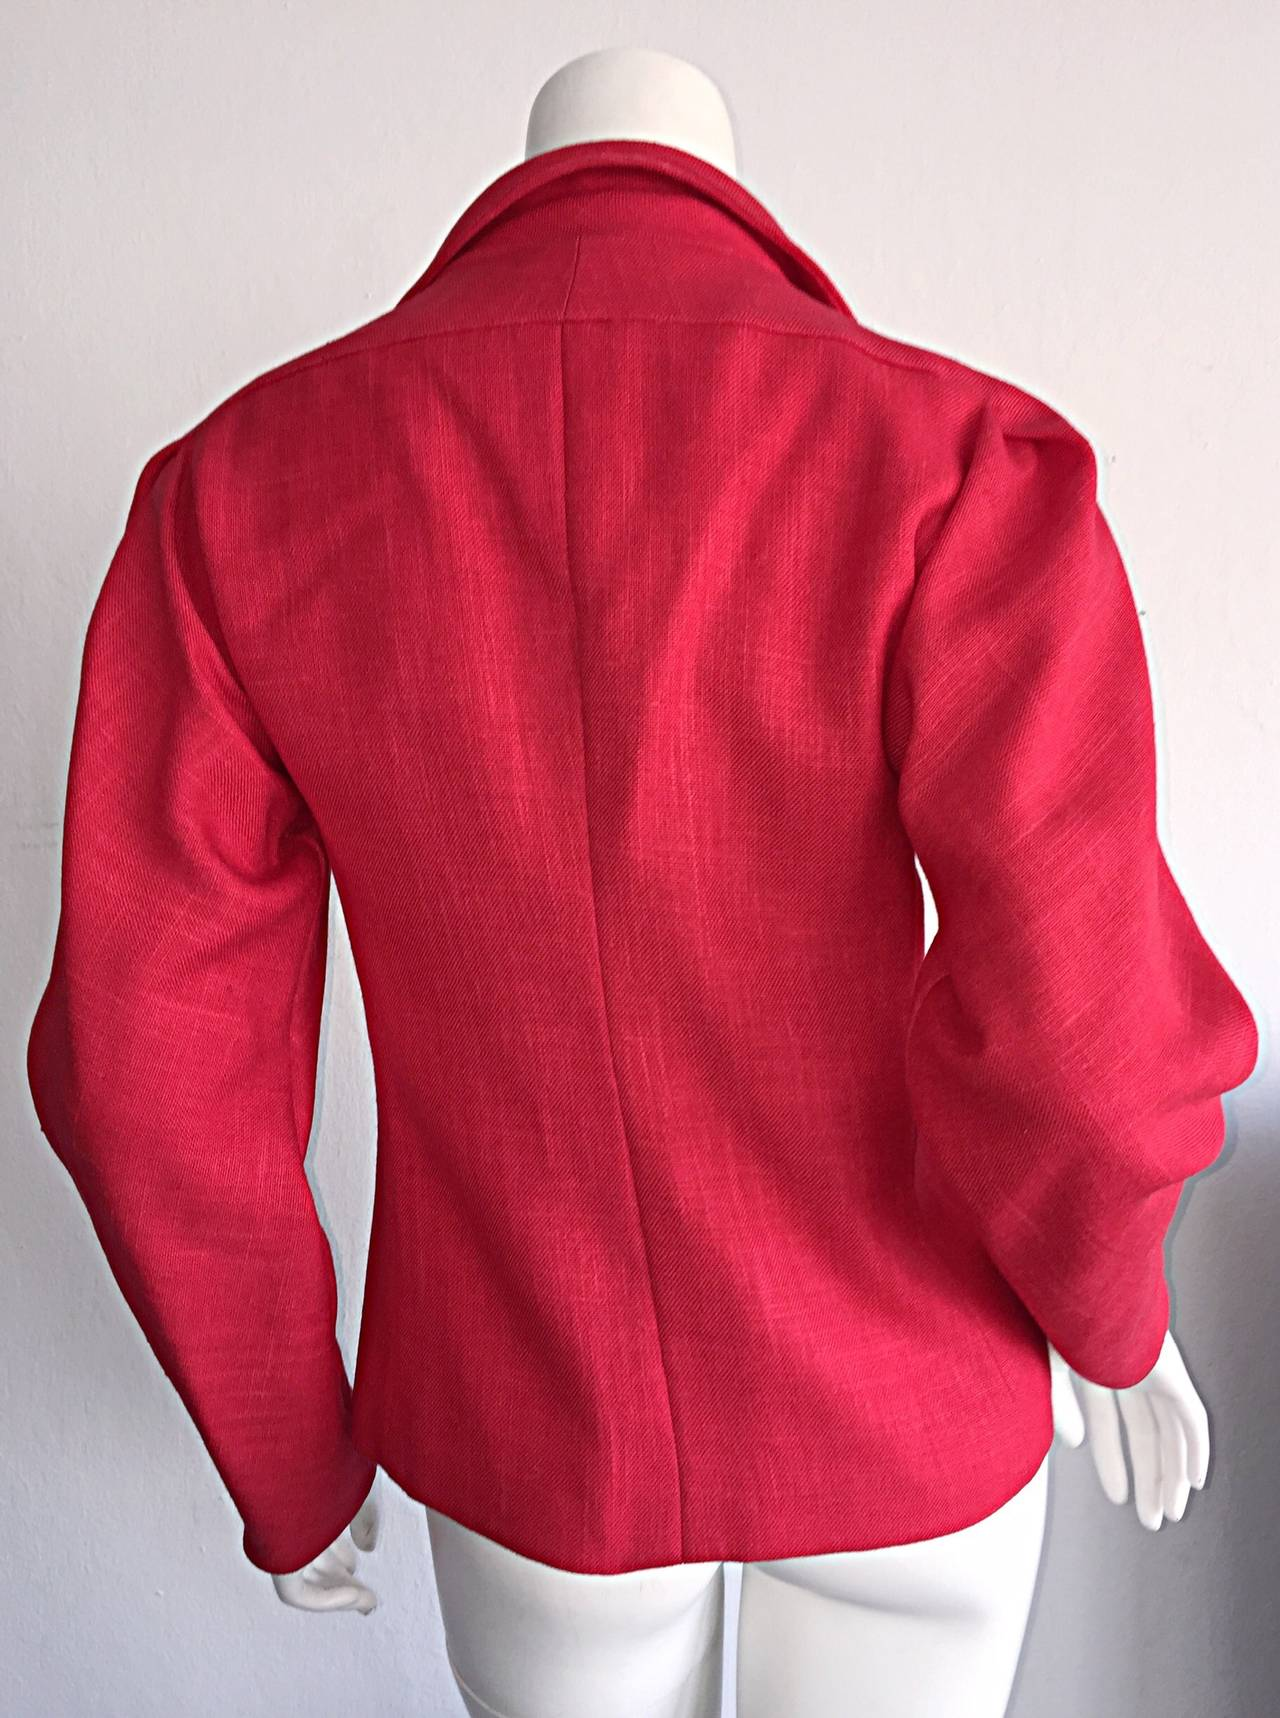 Vintage Halston Candy Apple Red Fitted Linen Blazer Jacket 5